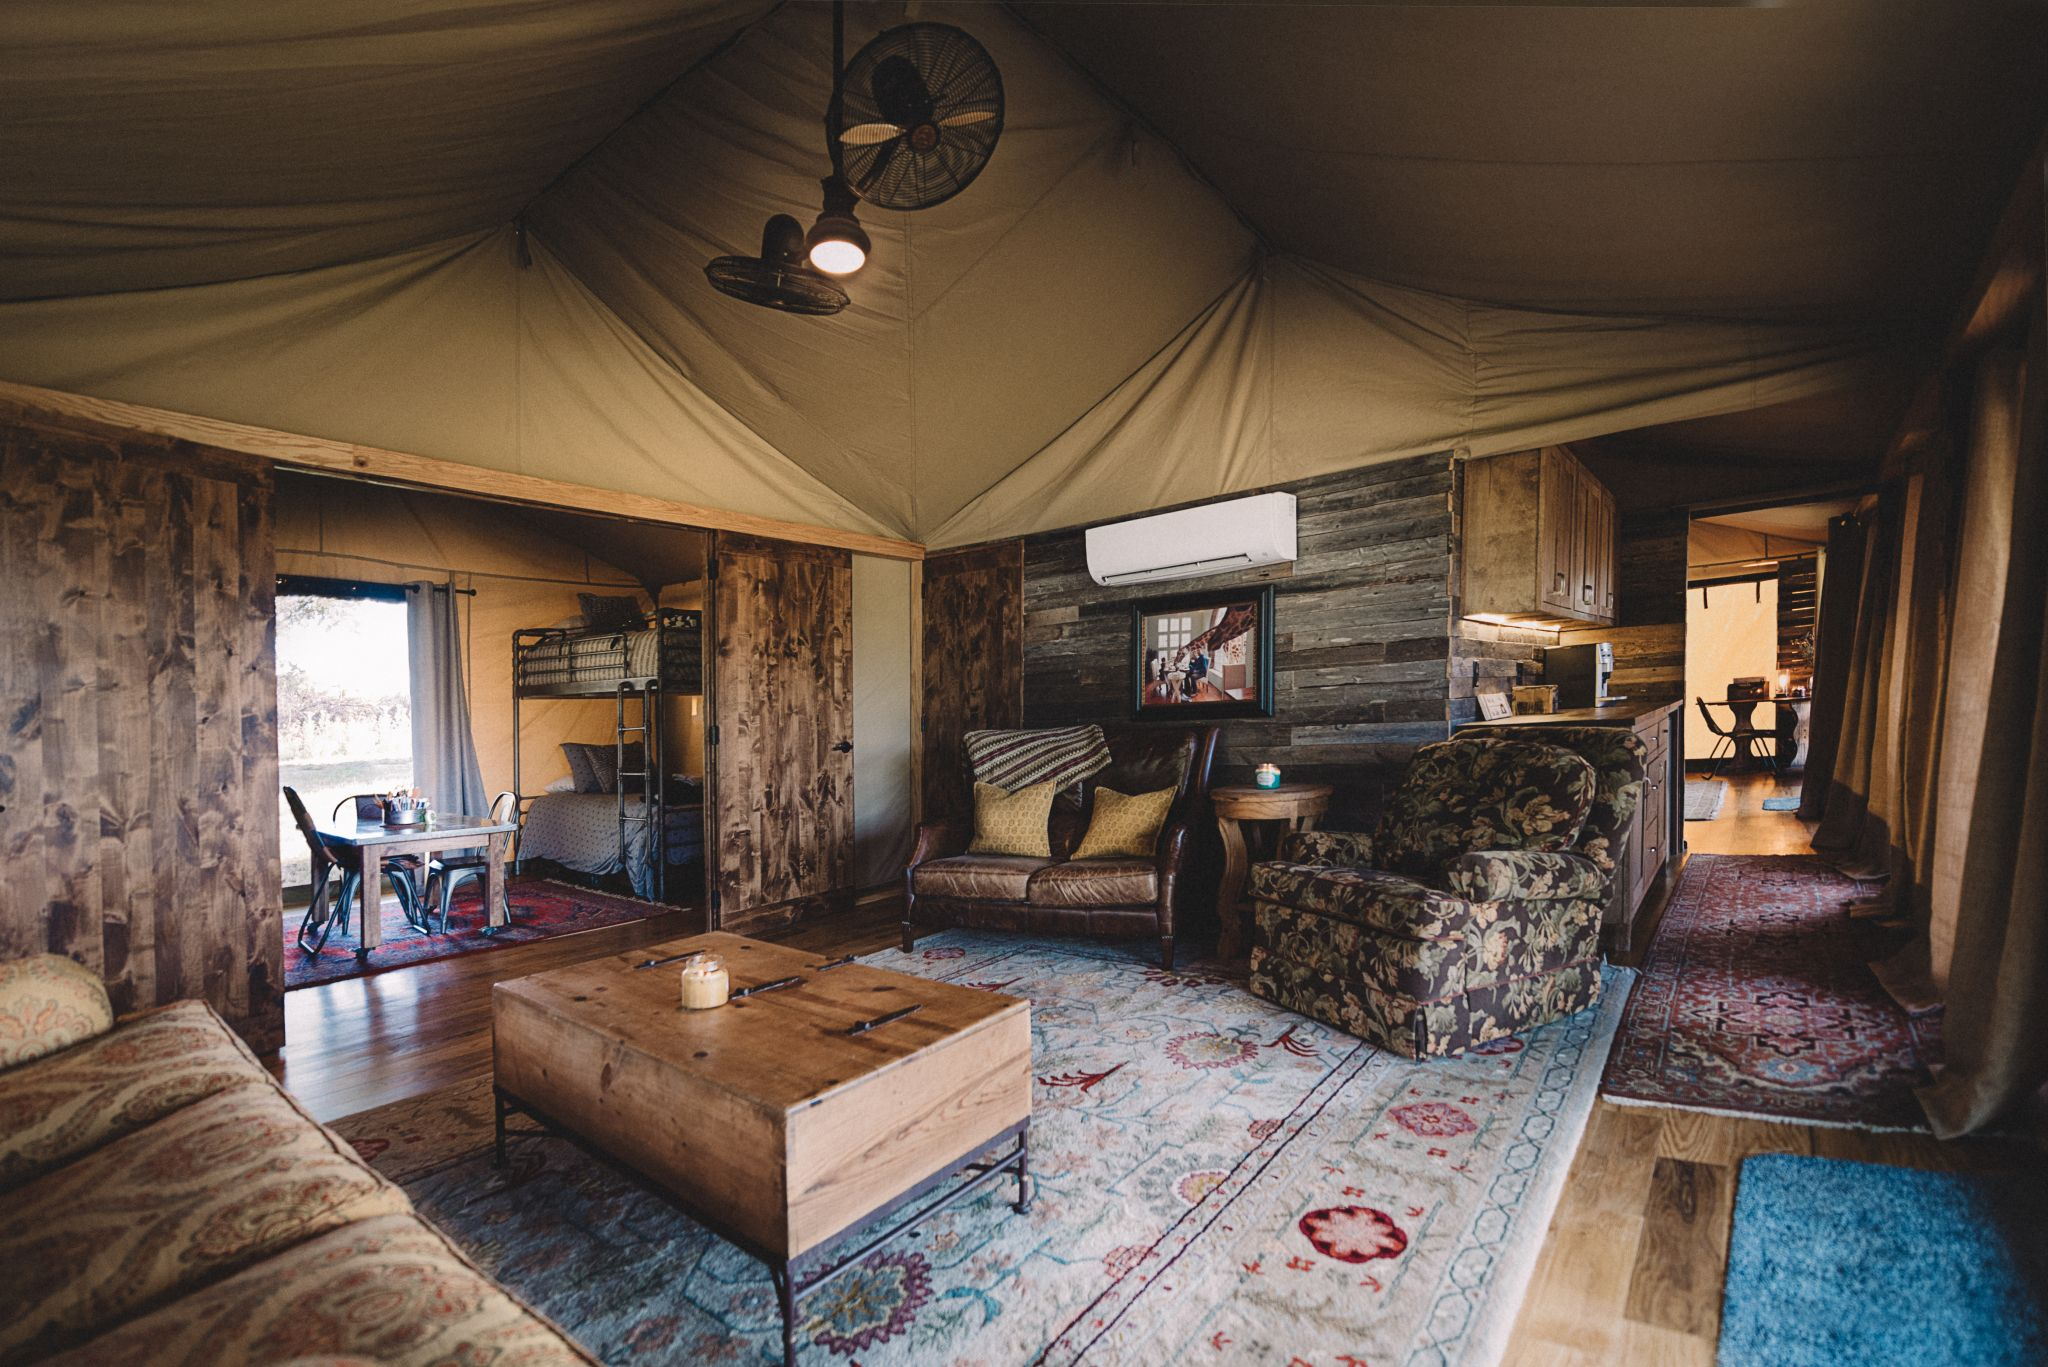 This Deluxe North Texas Tent Home Looks Rather Inviting